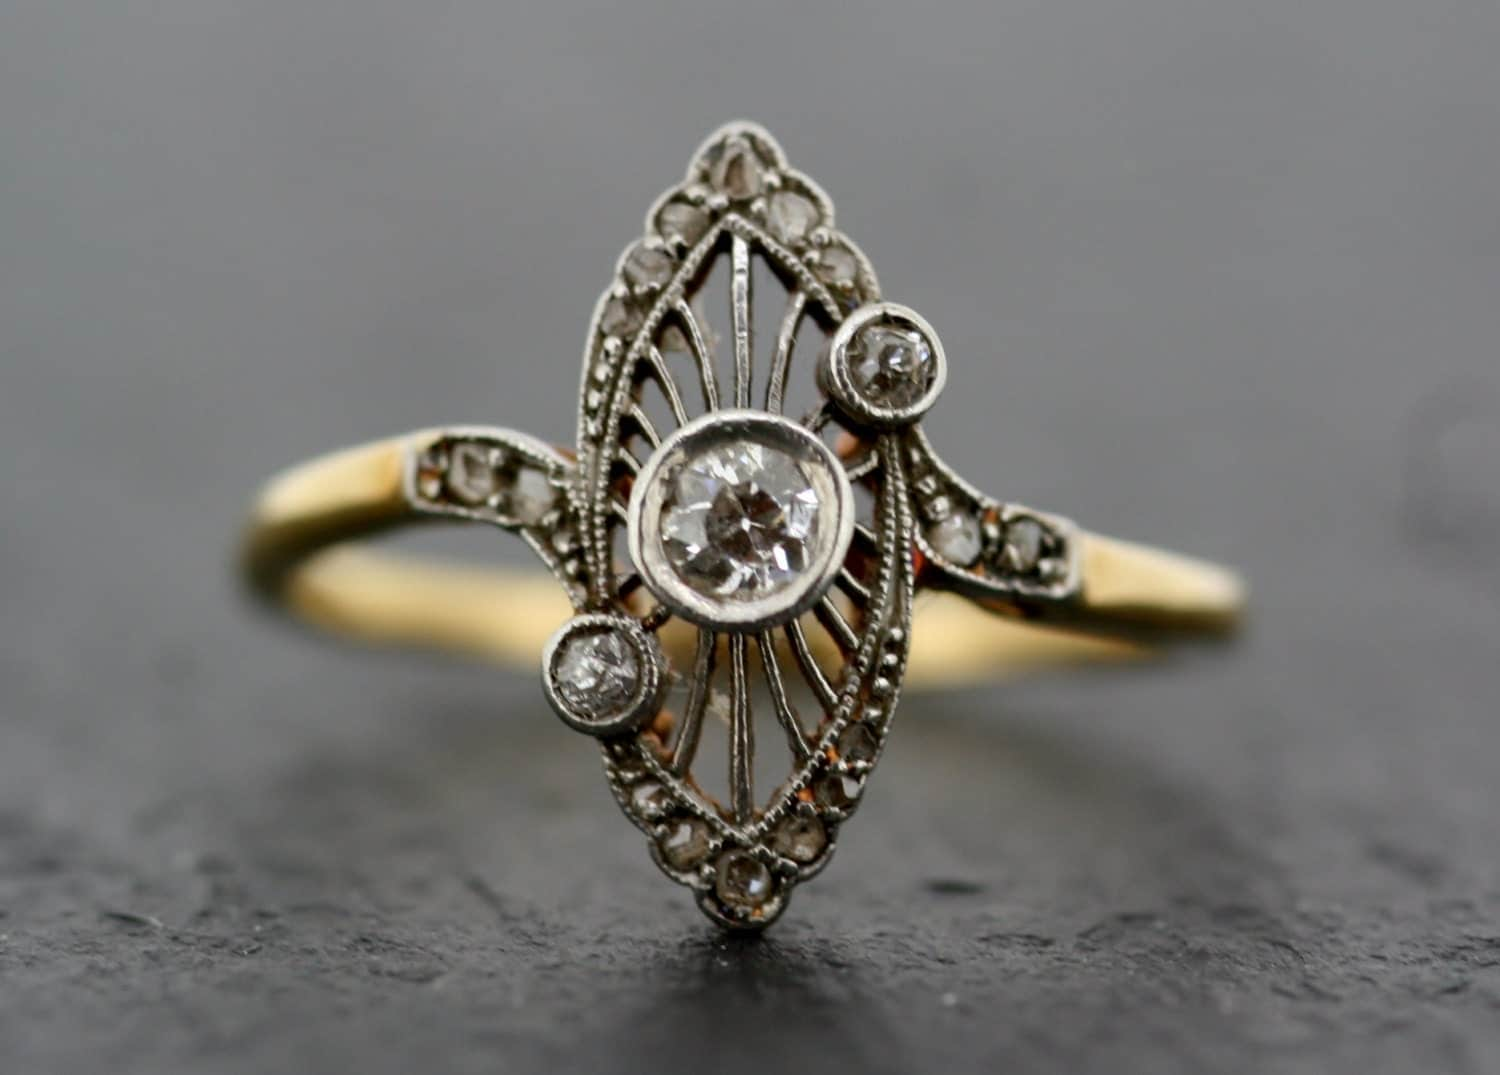 Antique Art Deco Ring Vintage Diamond Art Deco 18ct Gold